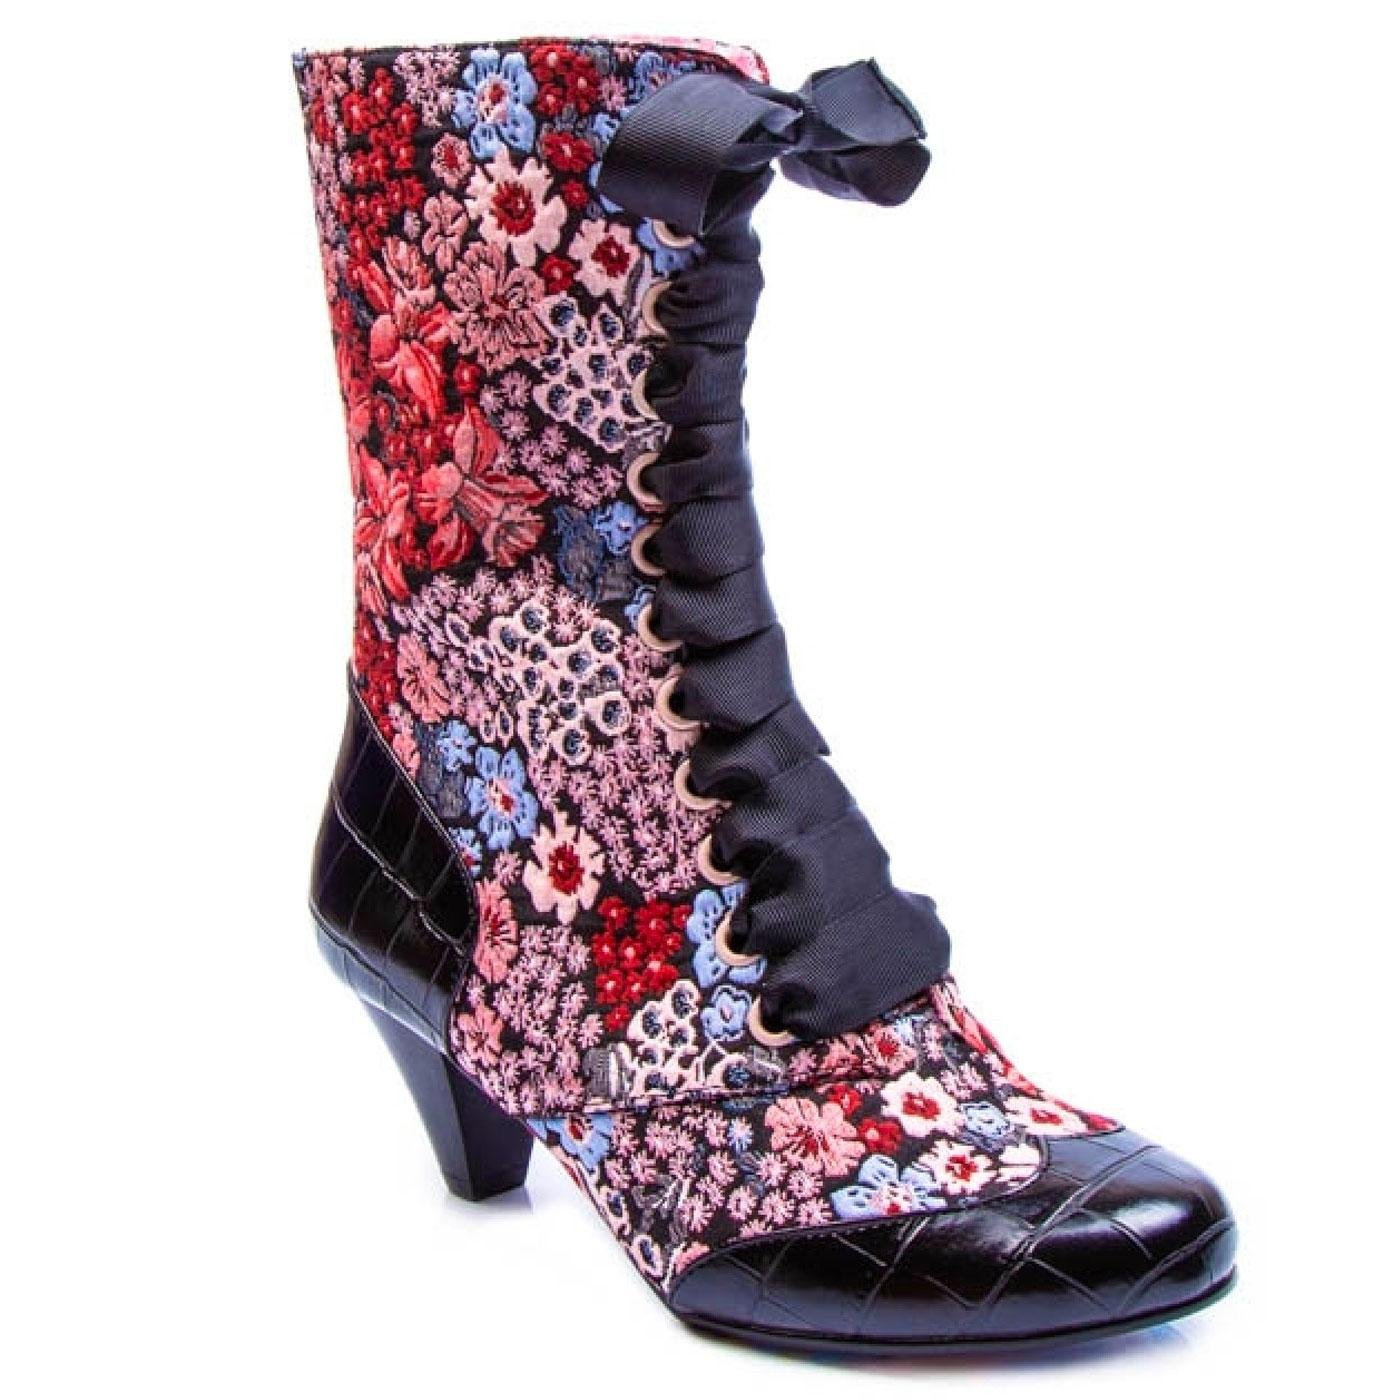 Lady Victoria IRREGULAR CHOICE Vintage Style Boots